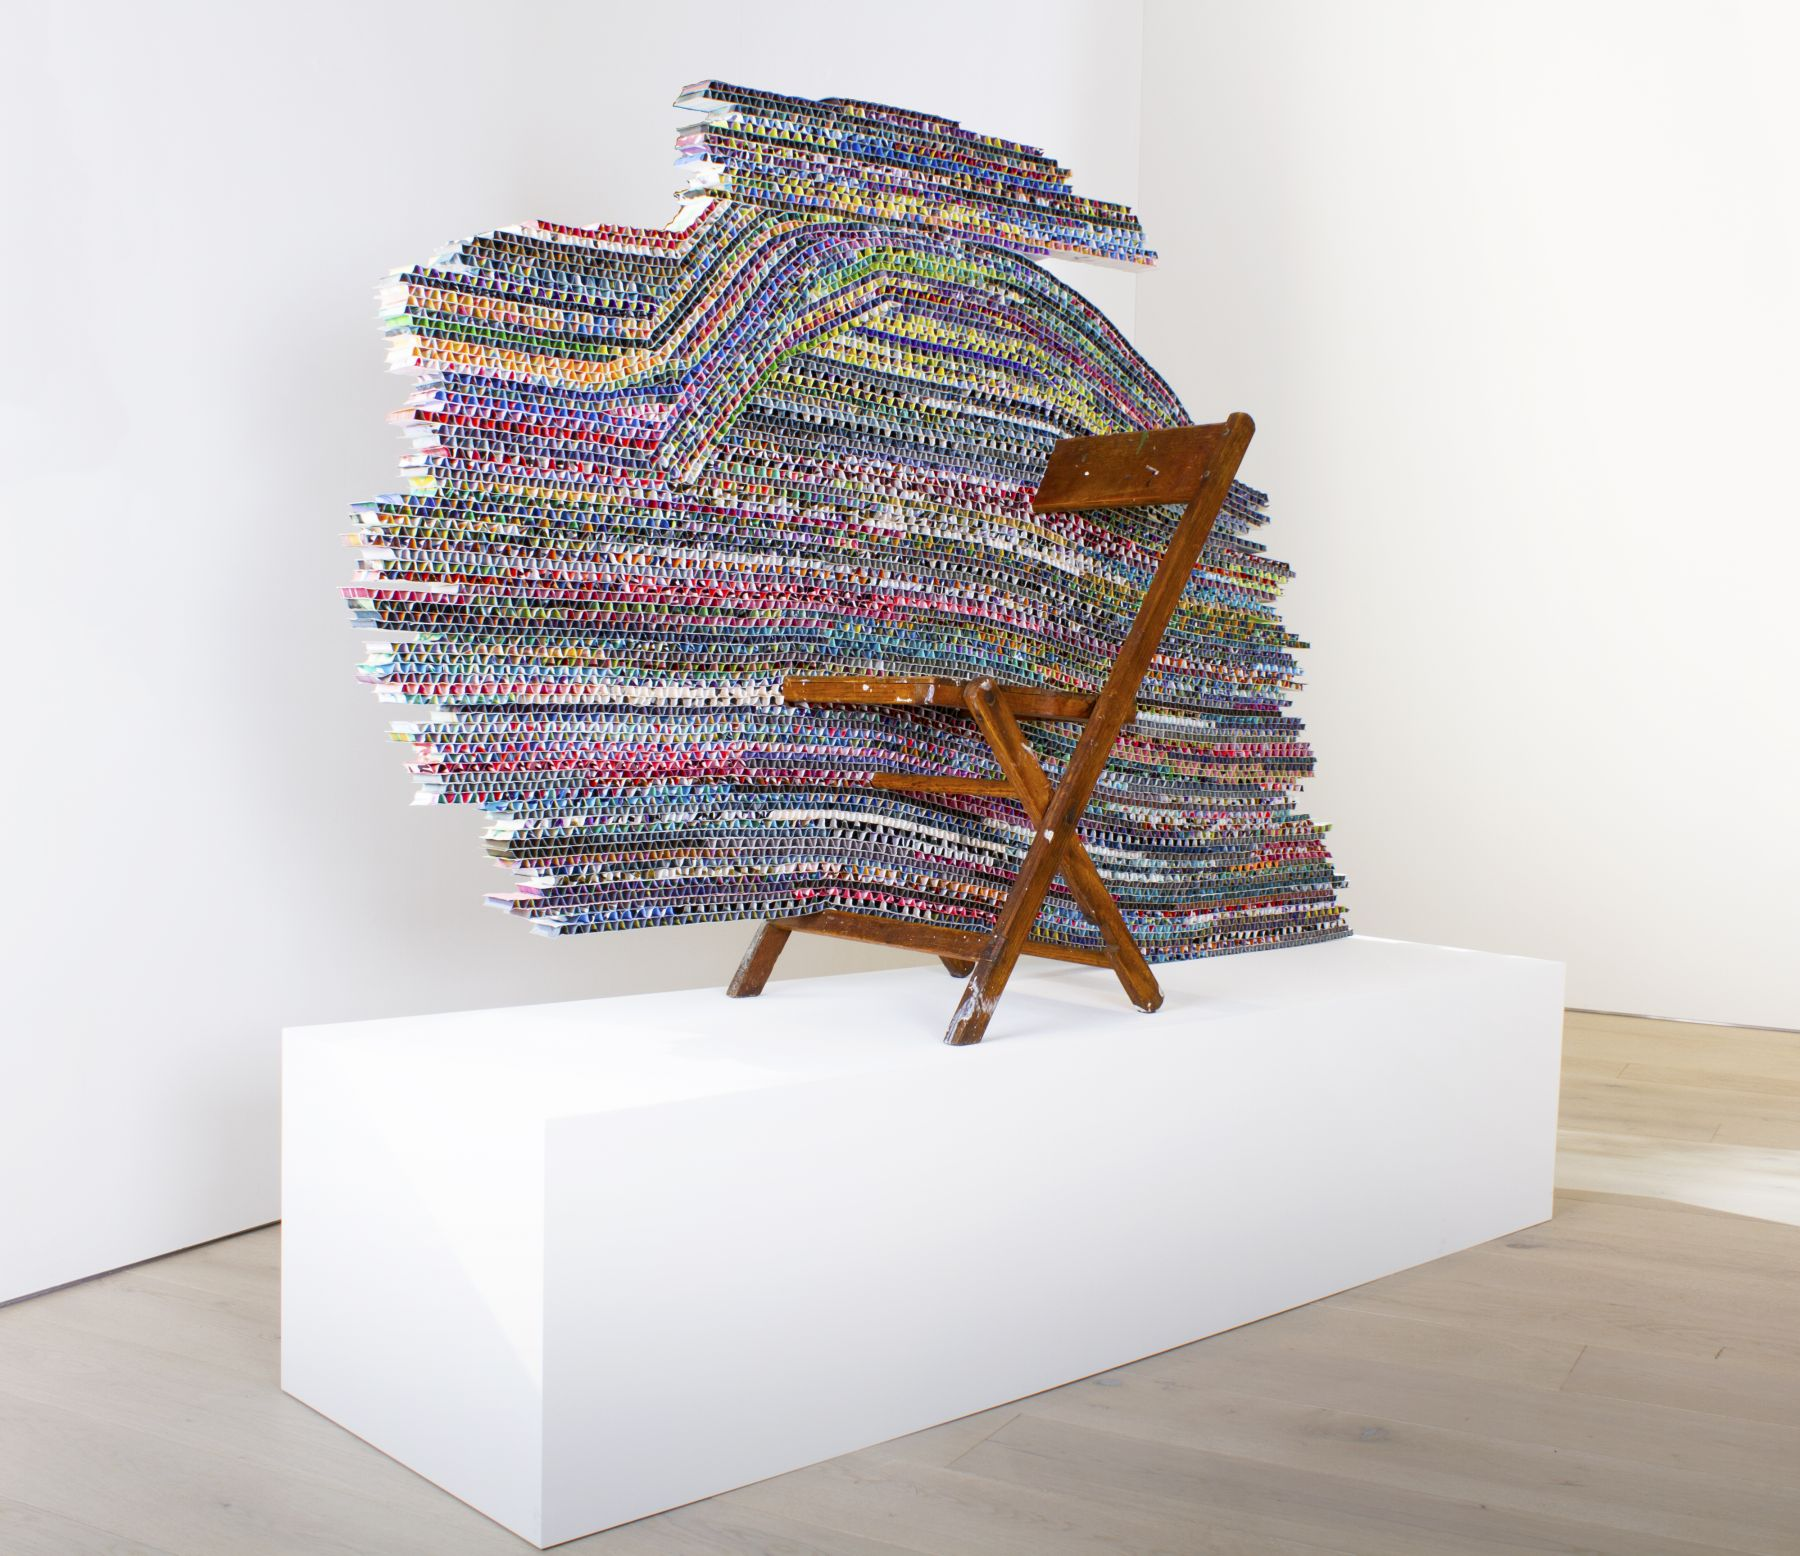 Mark Fox Untitled (Chair), 2011